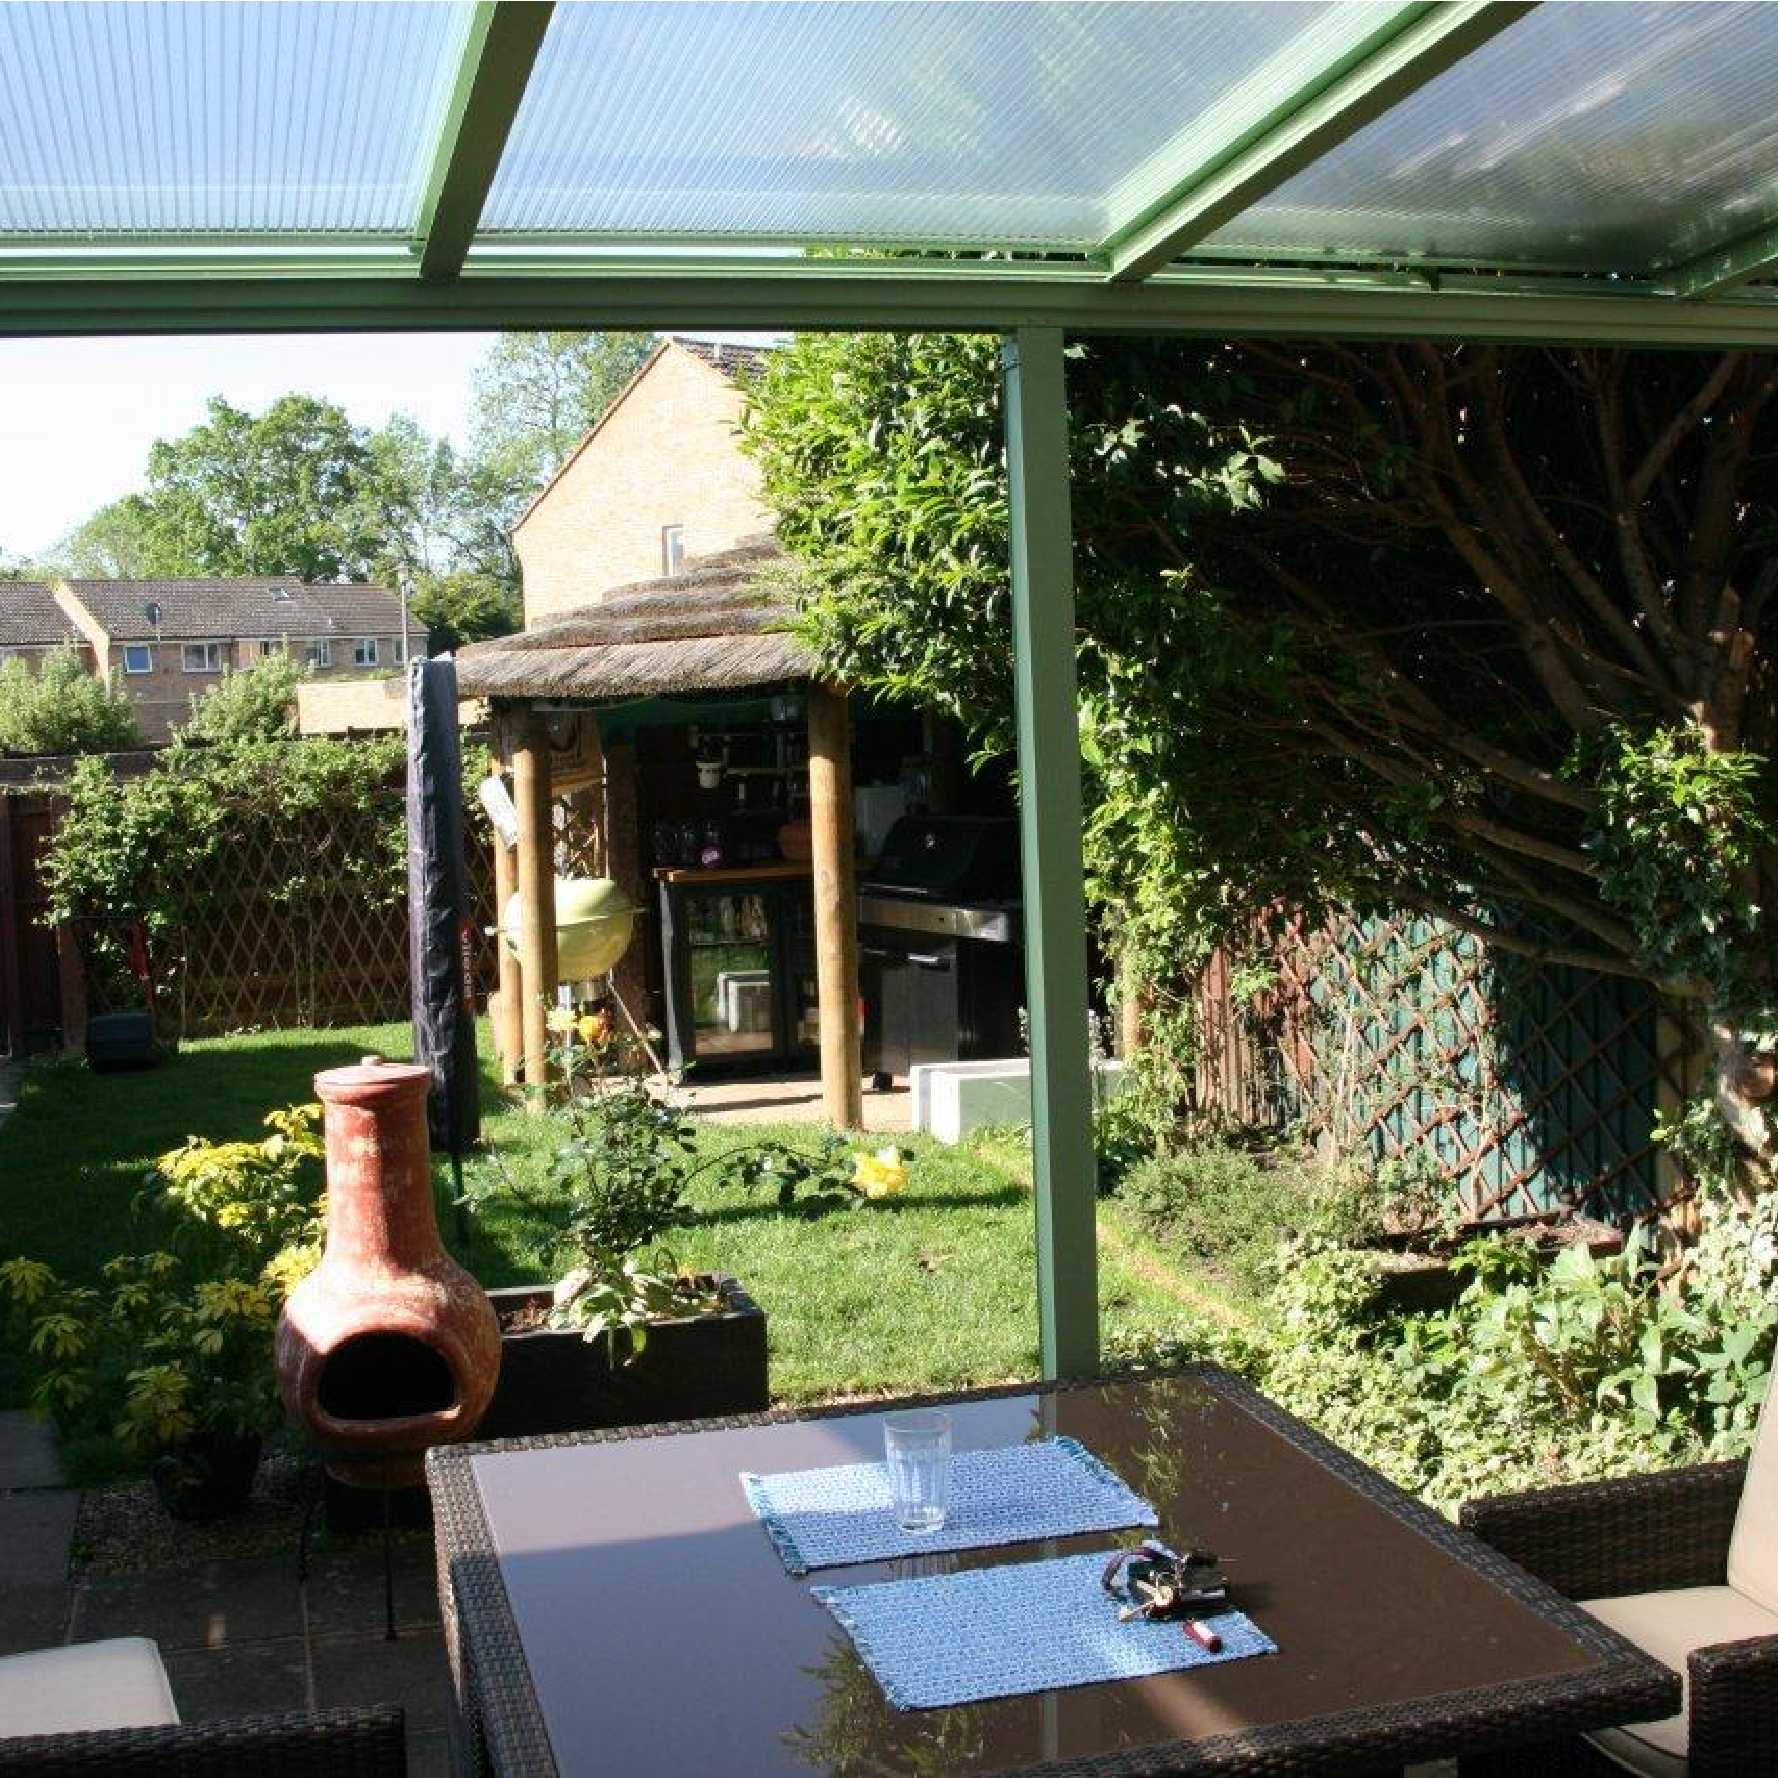 Affordable Omega Smart White Lean-To Canopy with 16mm Polycarbonate Glazing - 5.2m (W) x 2.0m (P), (3) Supporting Posts